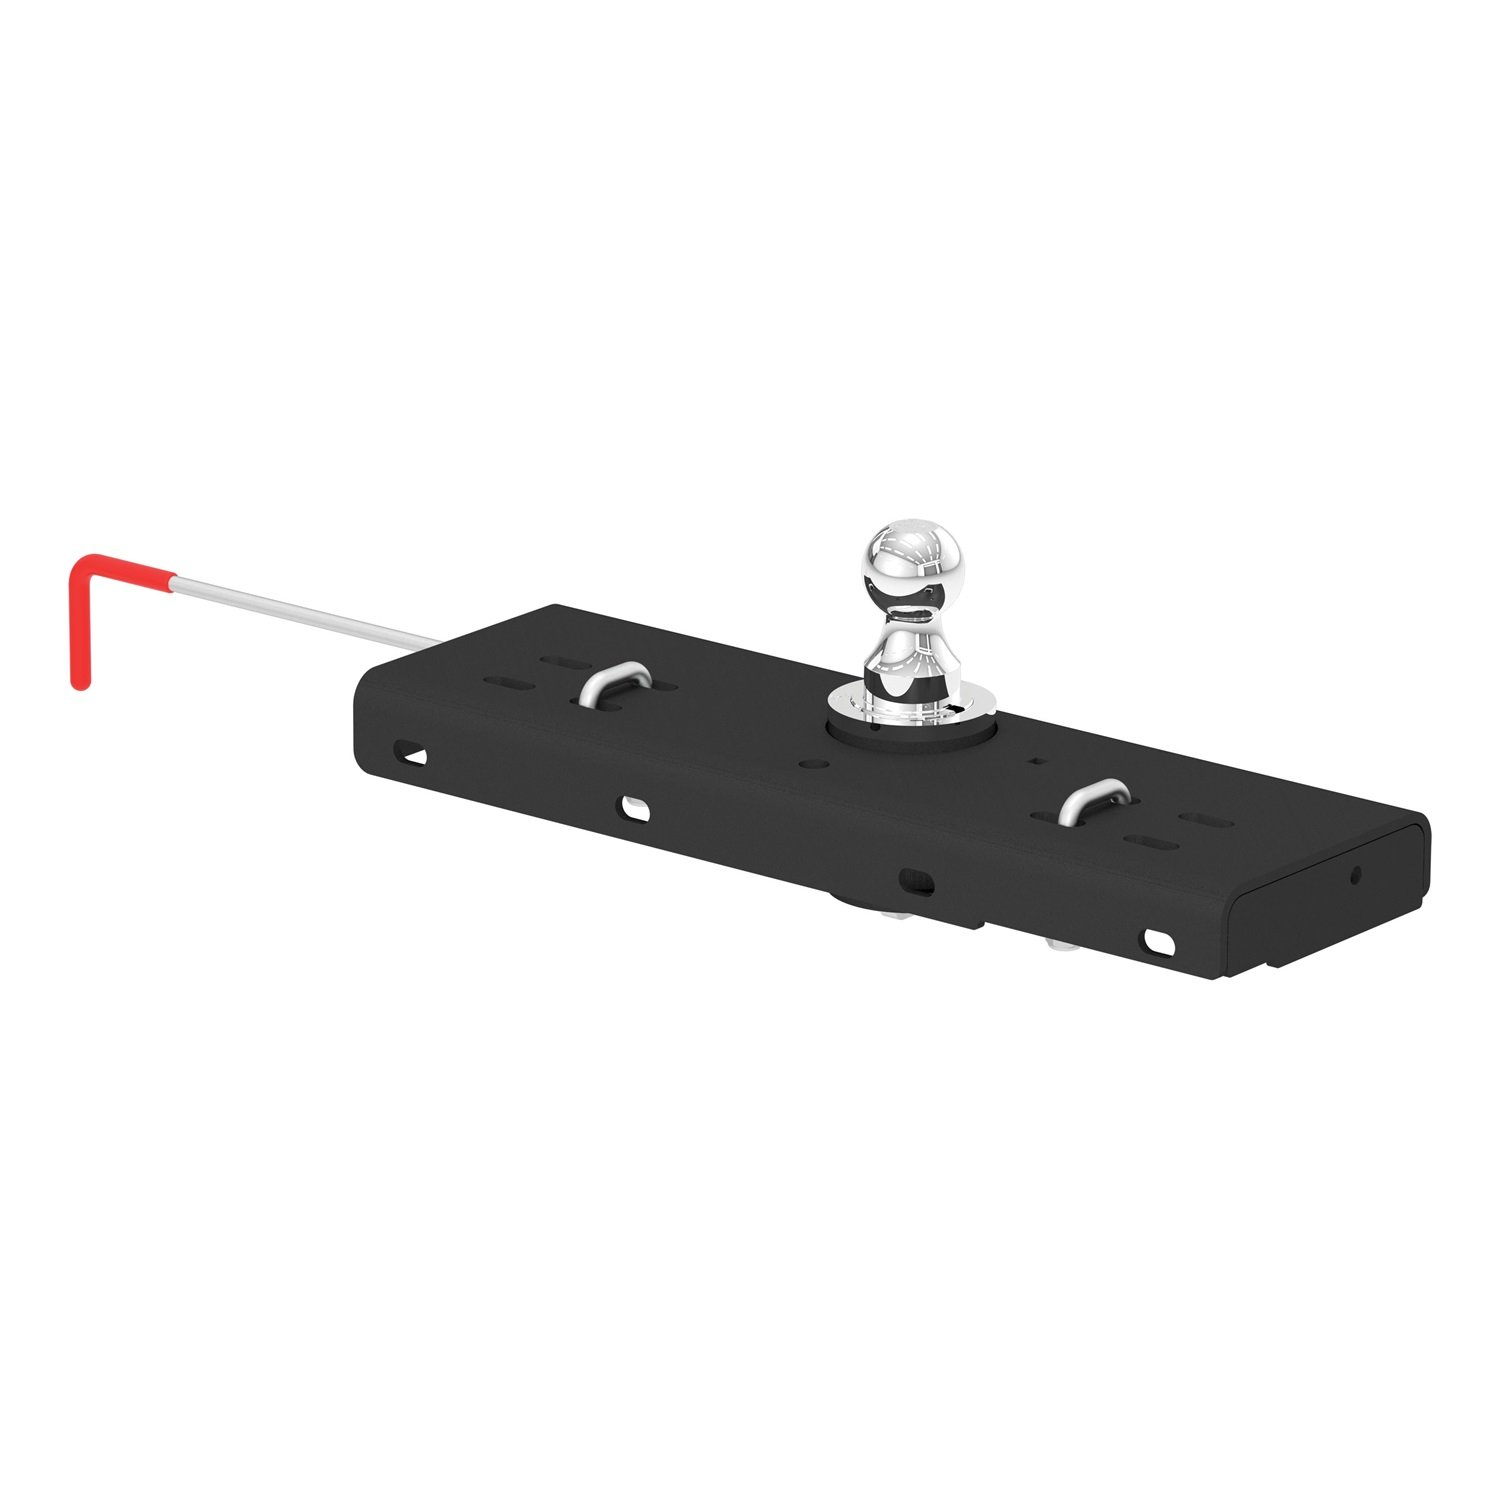 CURT 60607 Double Lock Gooseneck Hitch with Flip-and-Store Ball, 30,000 lbs., 2-5/16-Inch Ball by CURT